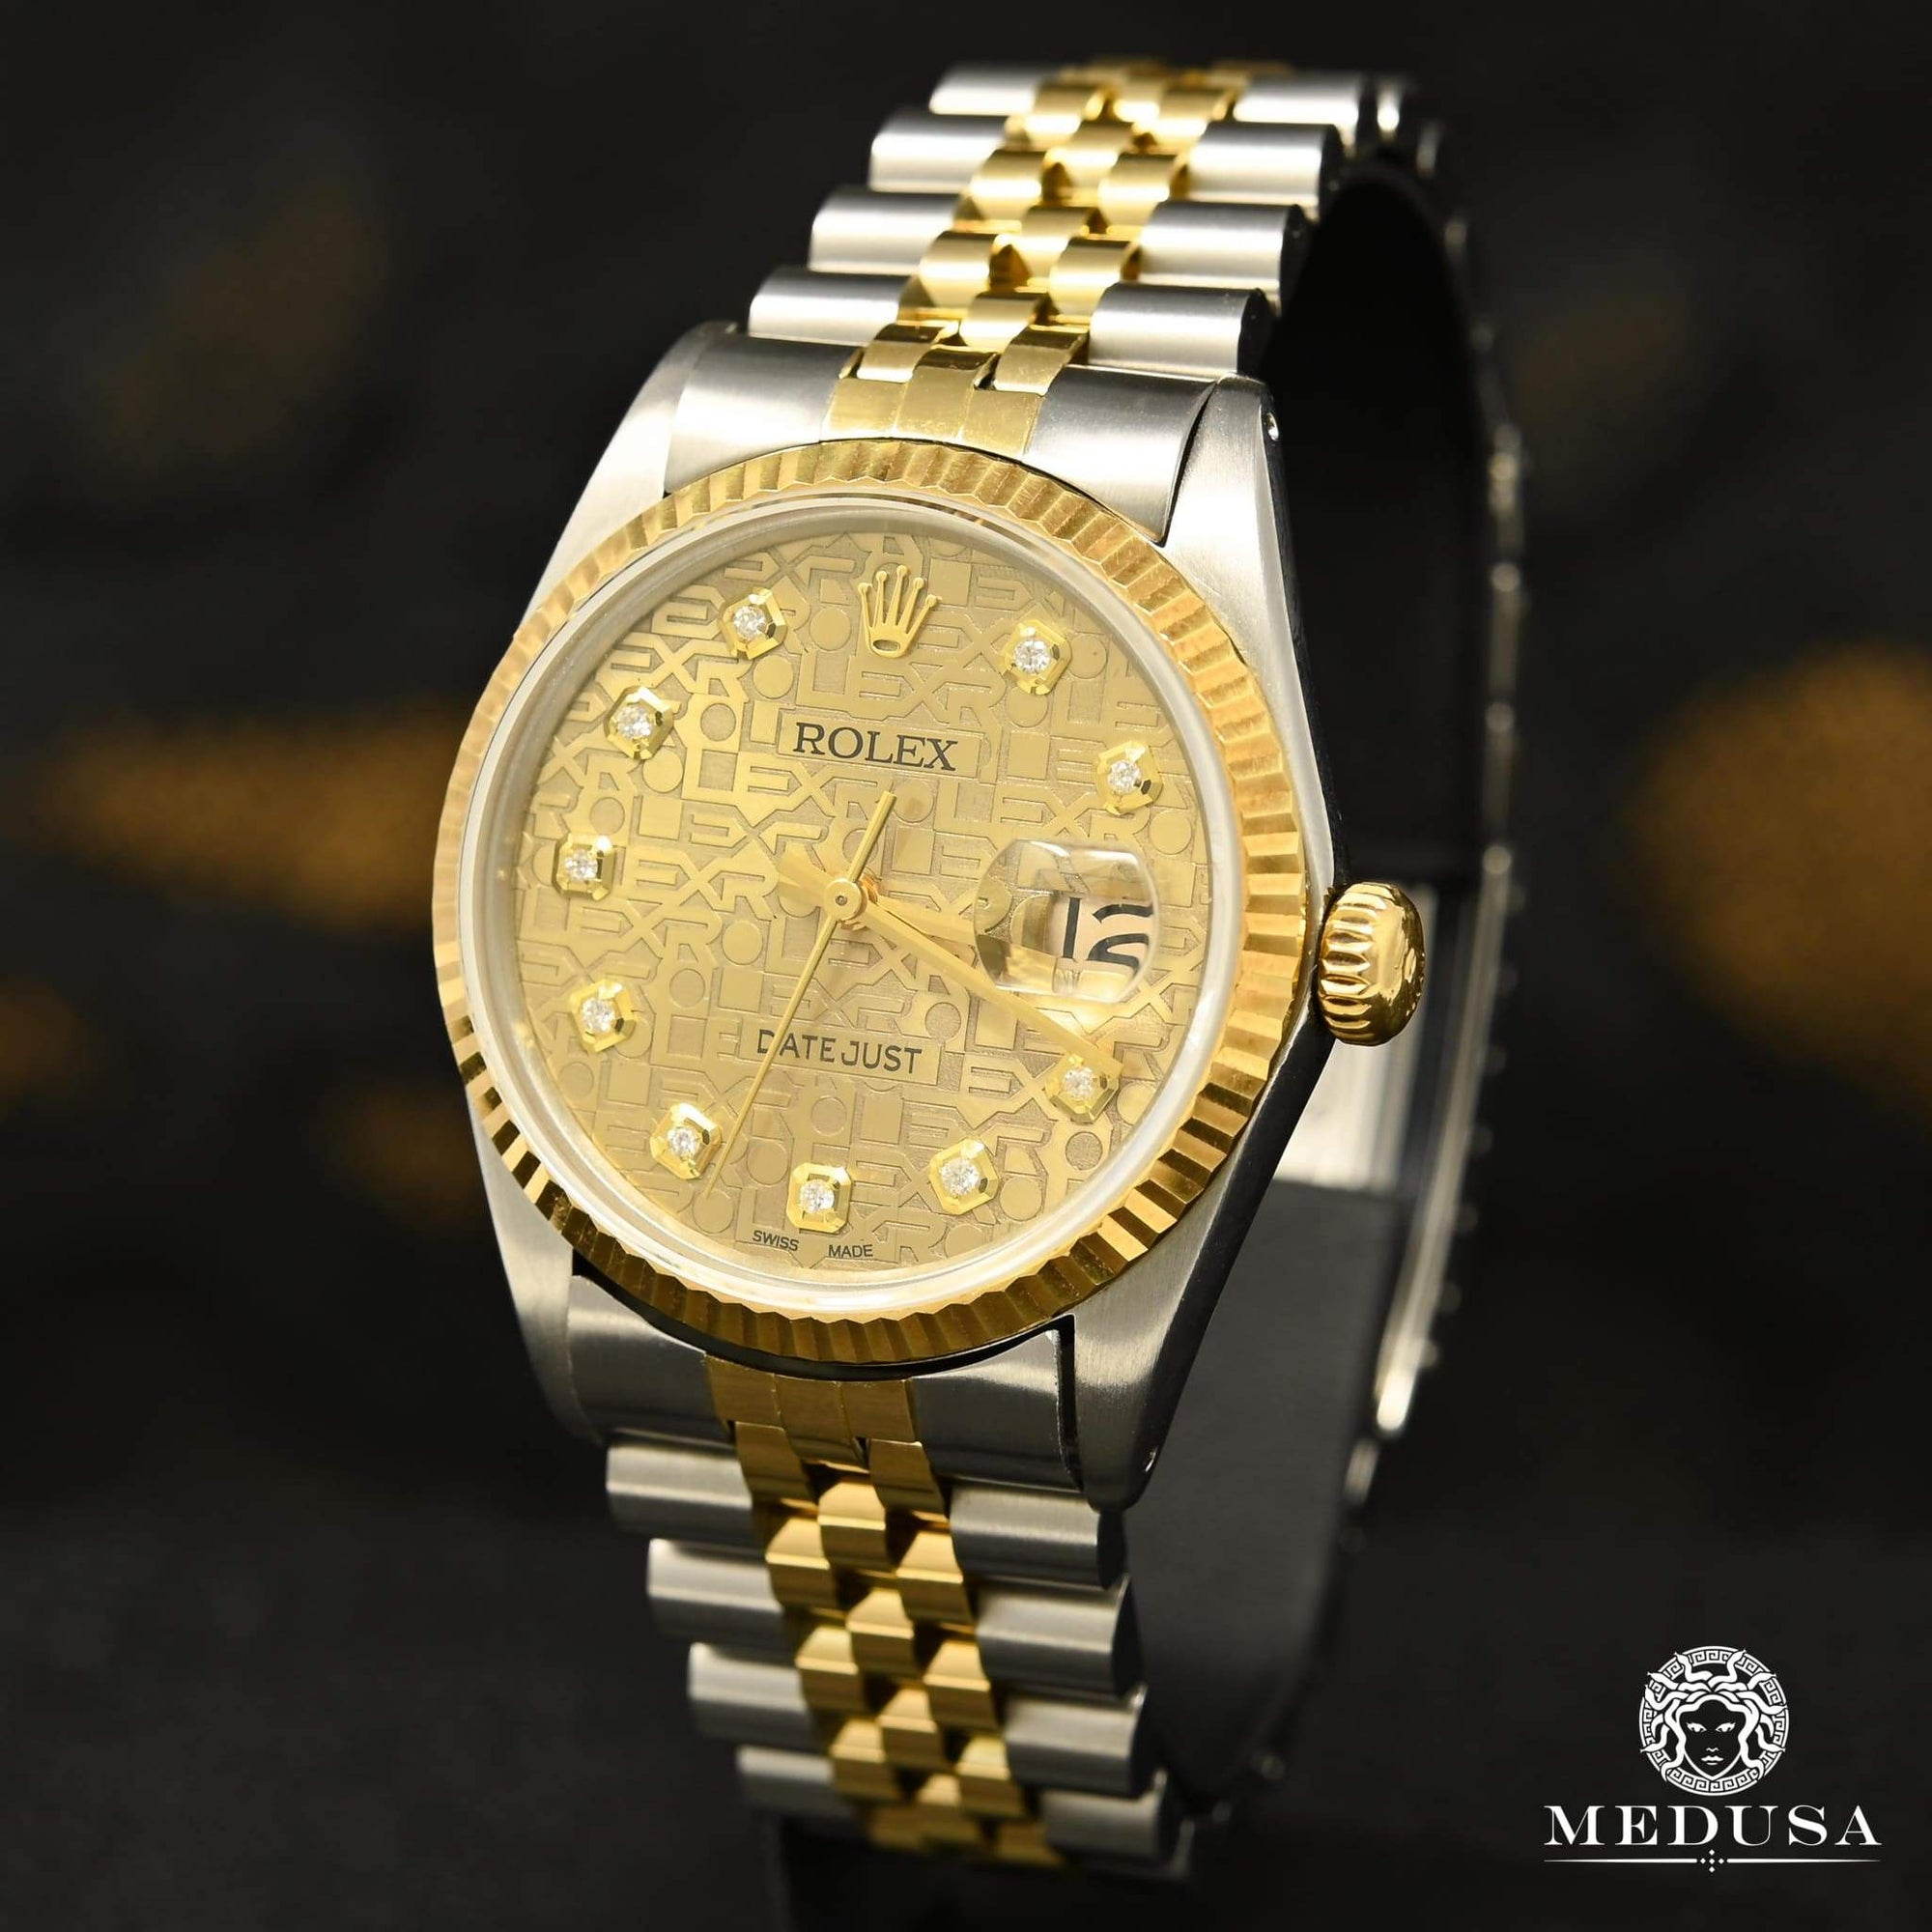 36mm Datejust Diamant In-Stock Jubilee - Rolex Datejust 36mm - Cadran Or Jubilee Montre Homme Bijoux Medusa - Canada Quebec Chicoutimi